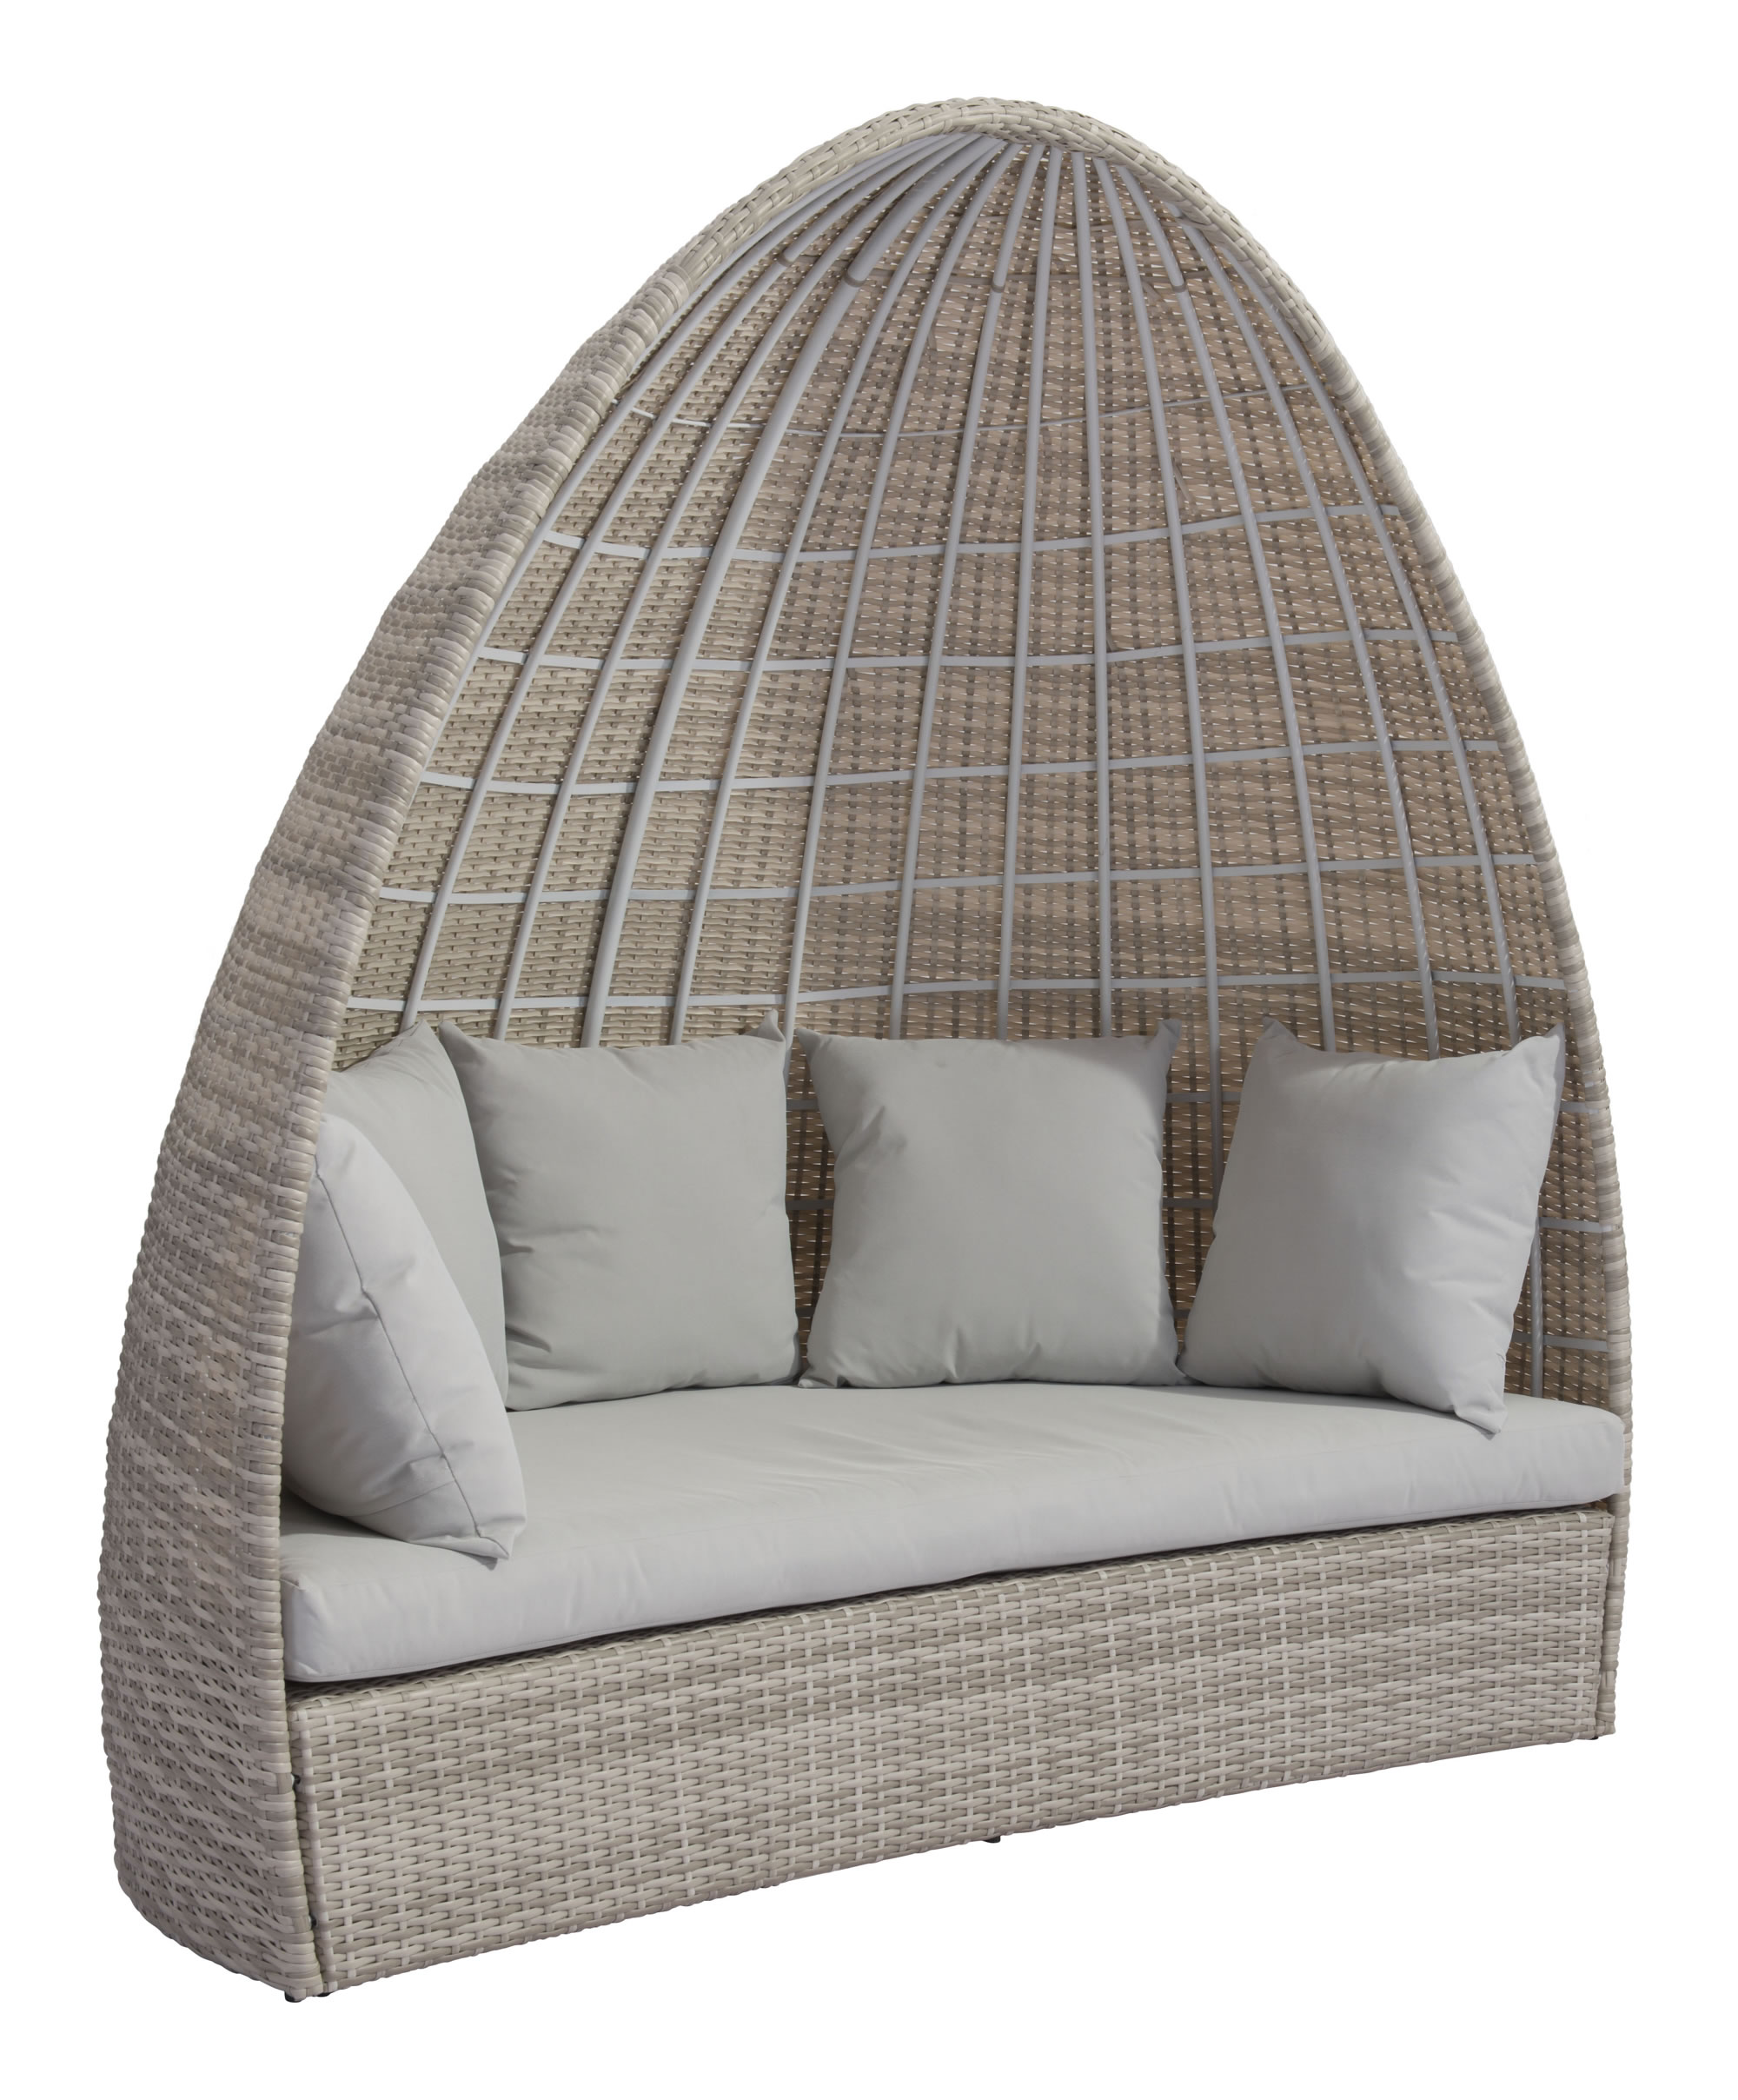 """79.5"""" x 45.7"""" x 80.3"""" White & Gray, Synthetic Weave, Aluminum, Daybed"""